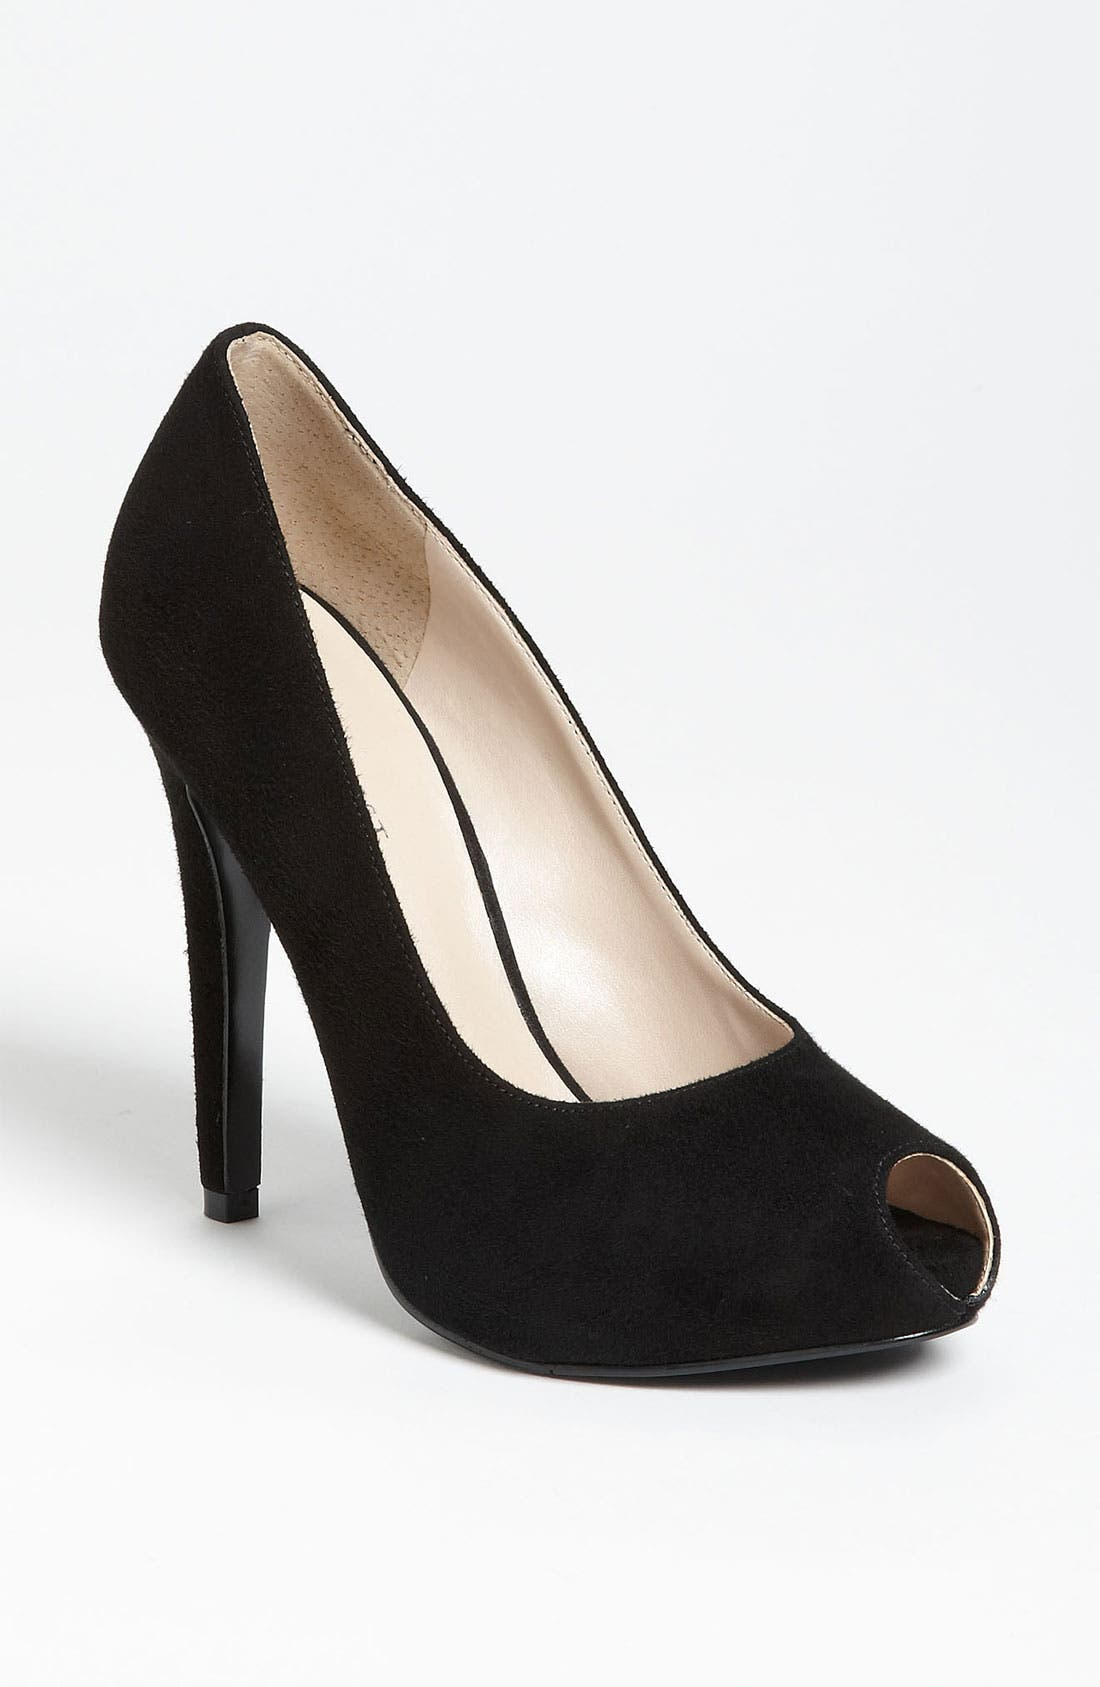 Alternate Image 1 Selected - Nine West 'Justcruise' Pump